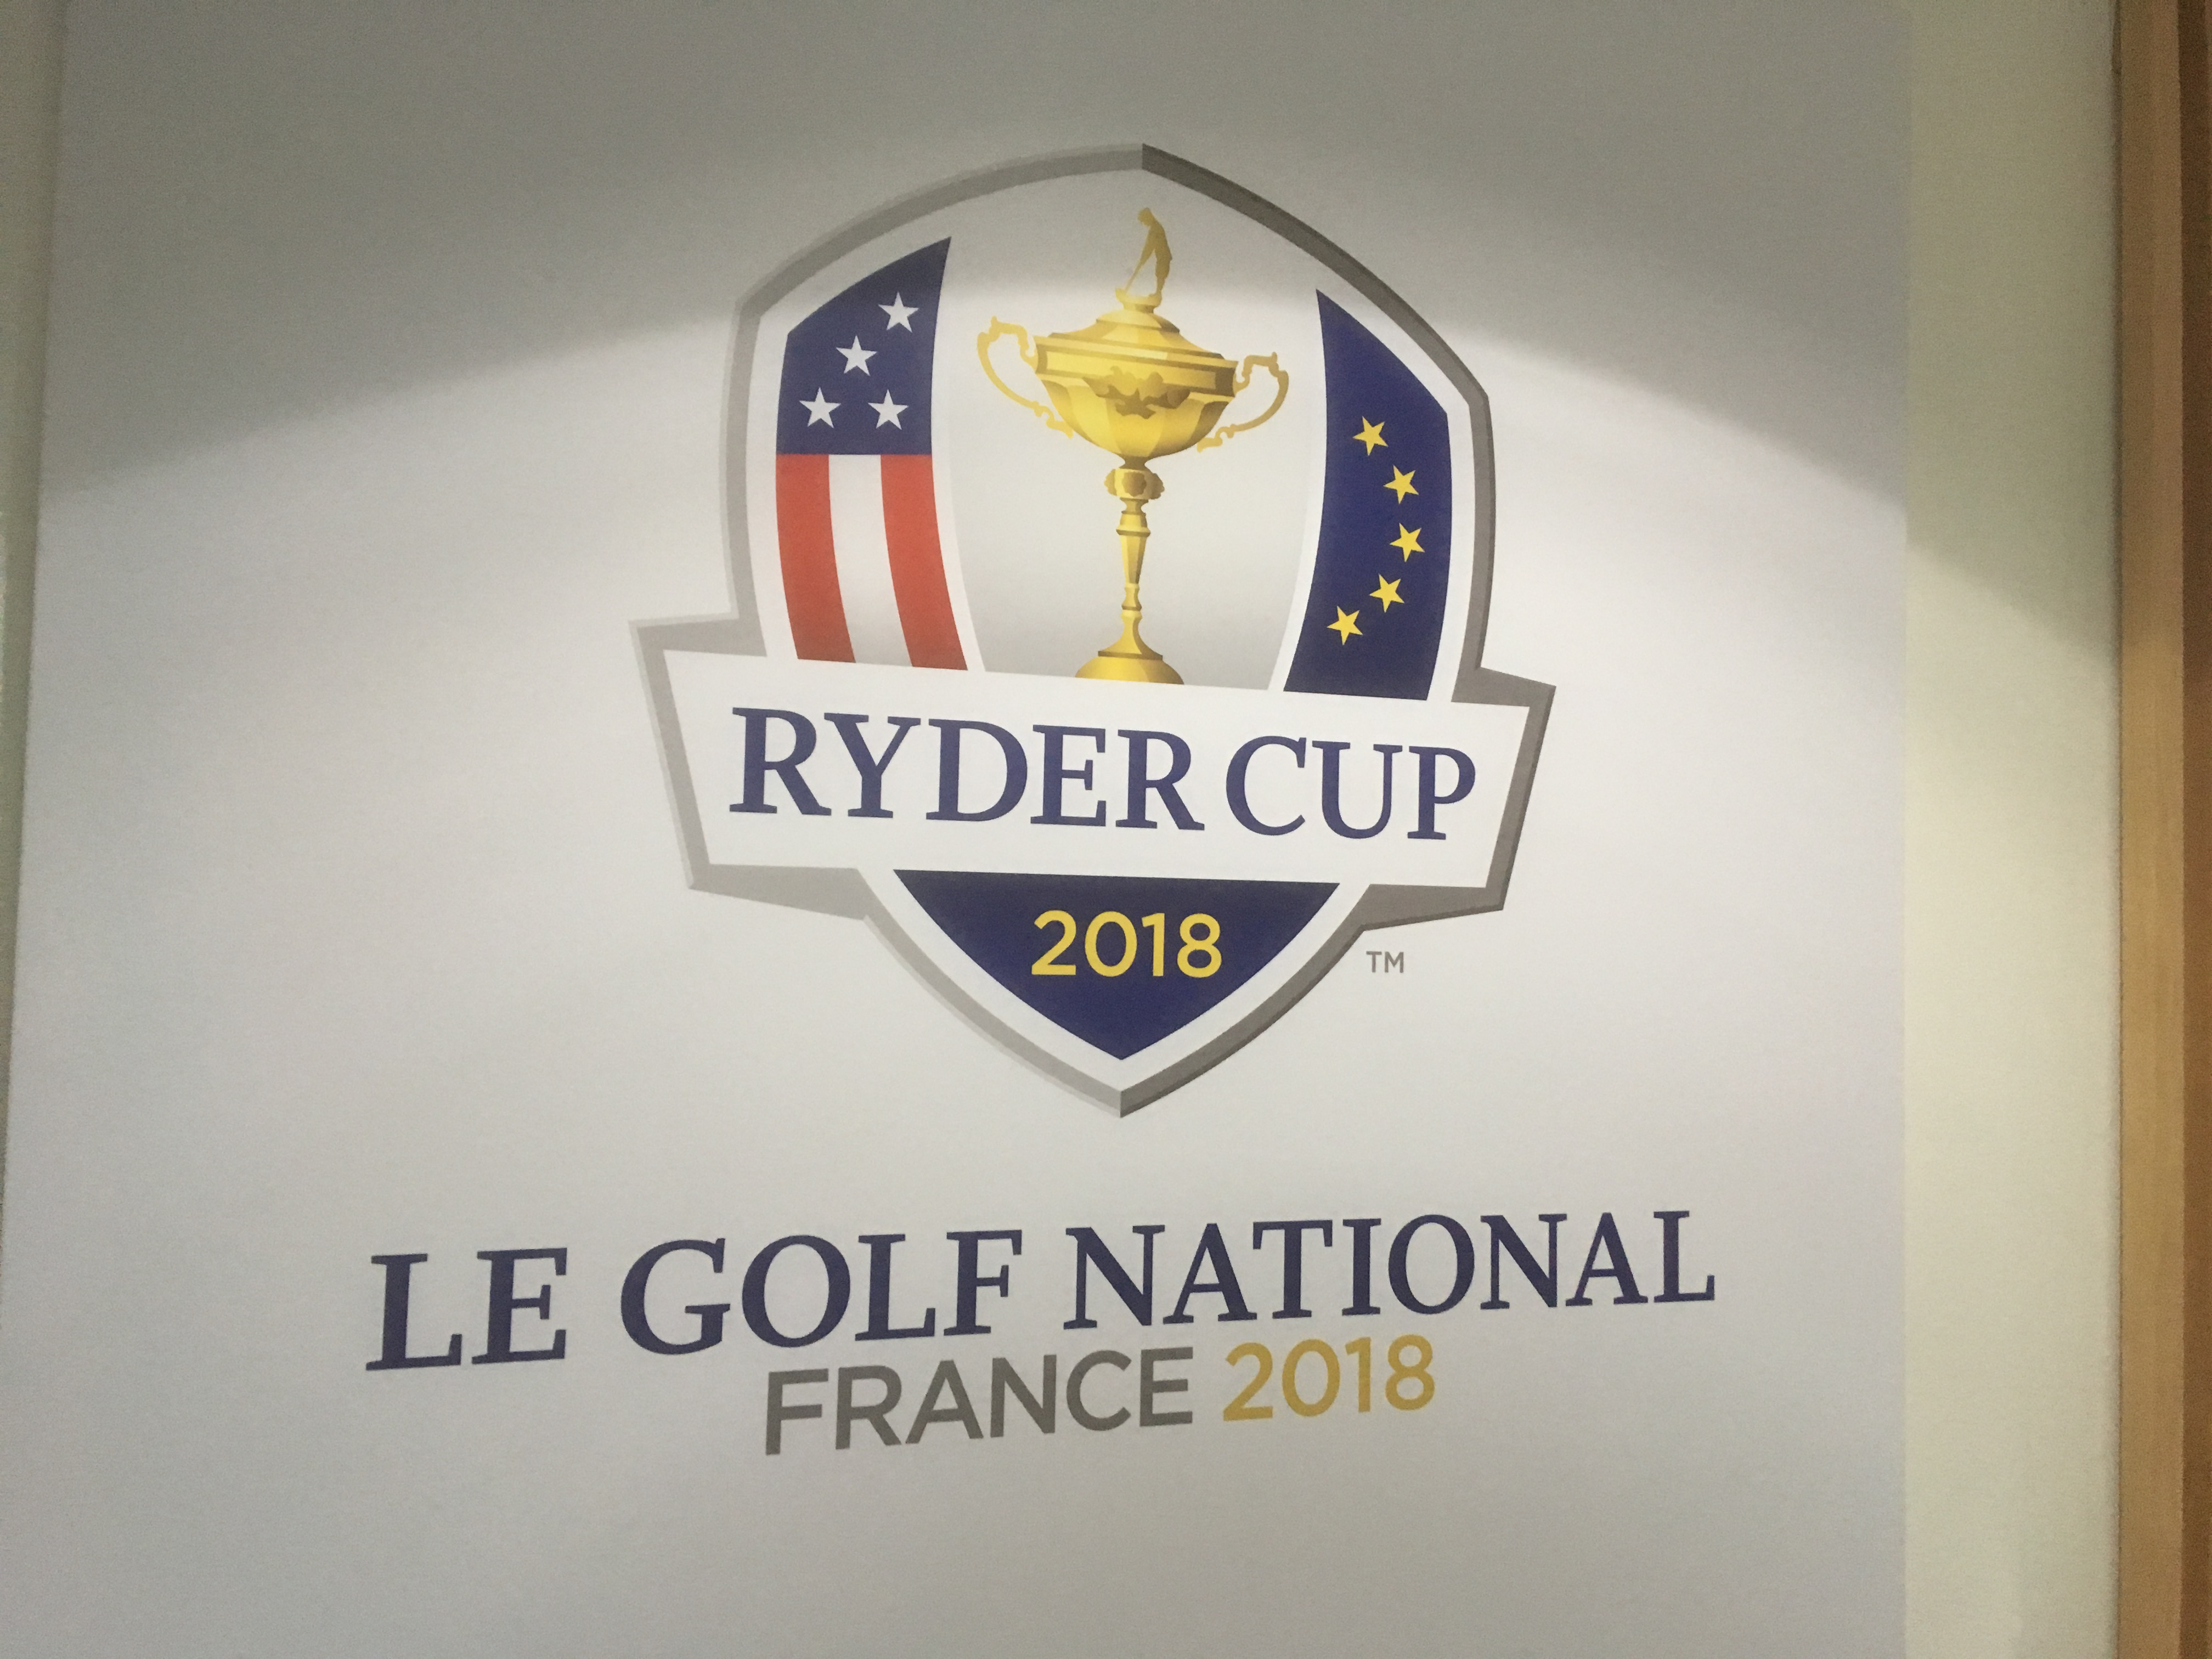 Le Golf National - Ryder Cup 2018 Course Review